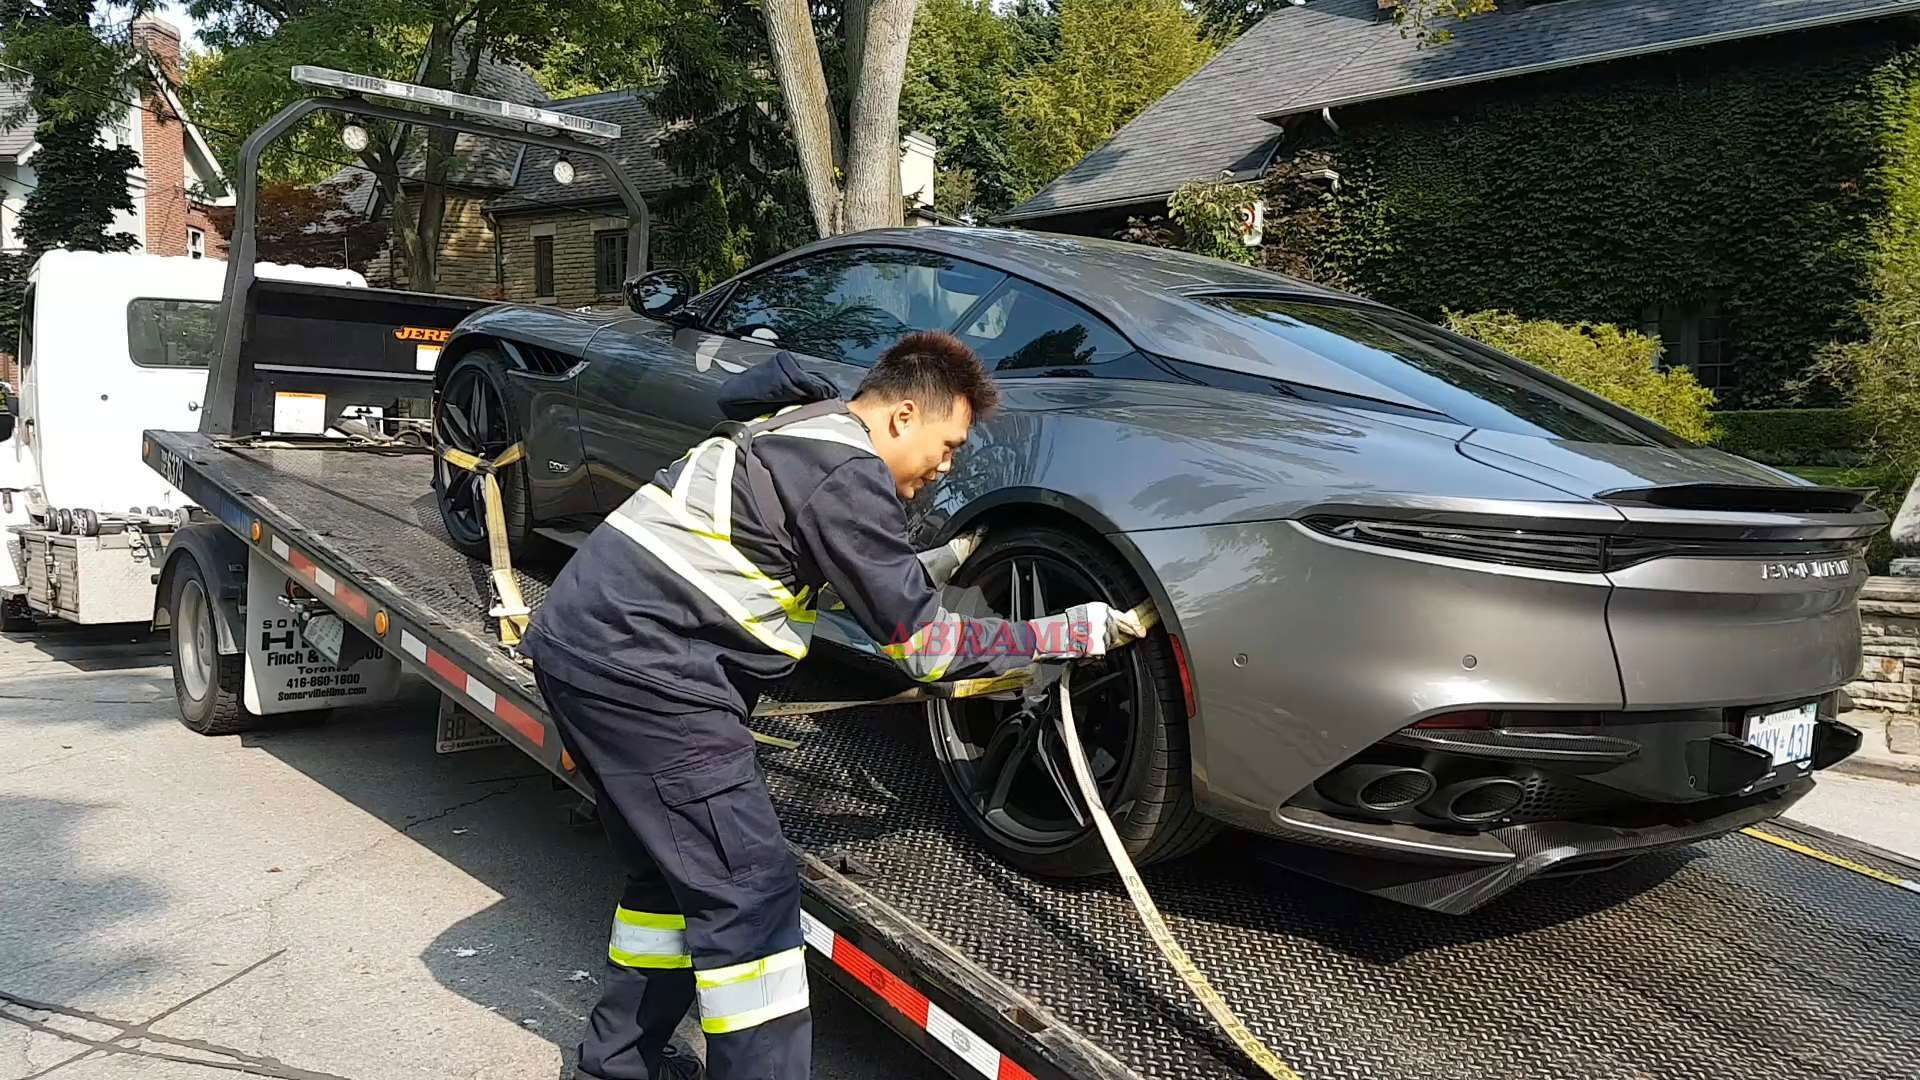 Securing the Aston Martin DBS using tow straps